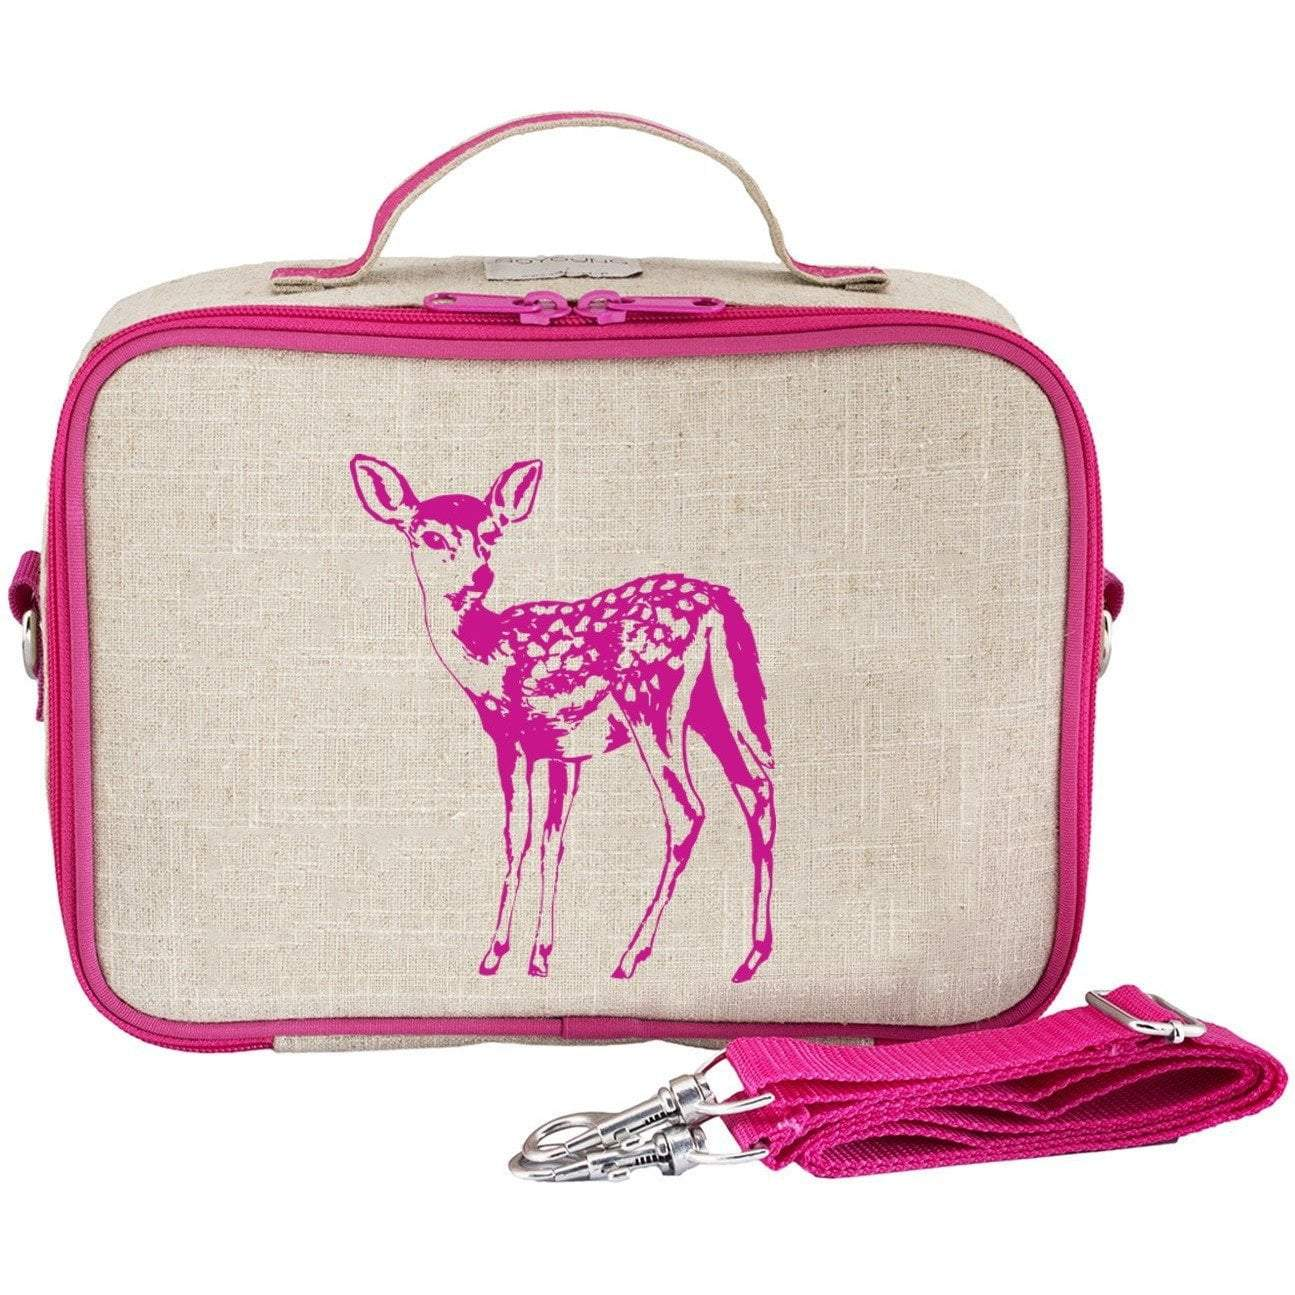 SoYoung To Eat Pink Fawn Lunch Box kids-children-mums-parenting-toyshop-fun kids-children-mums-parenting-toyshop-fun